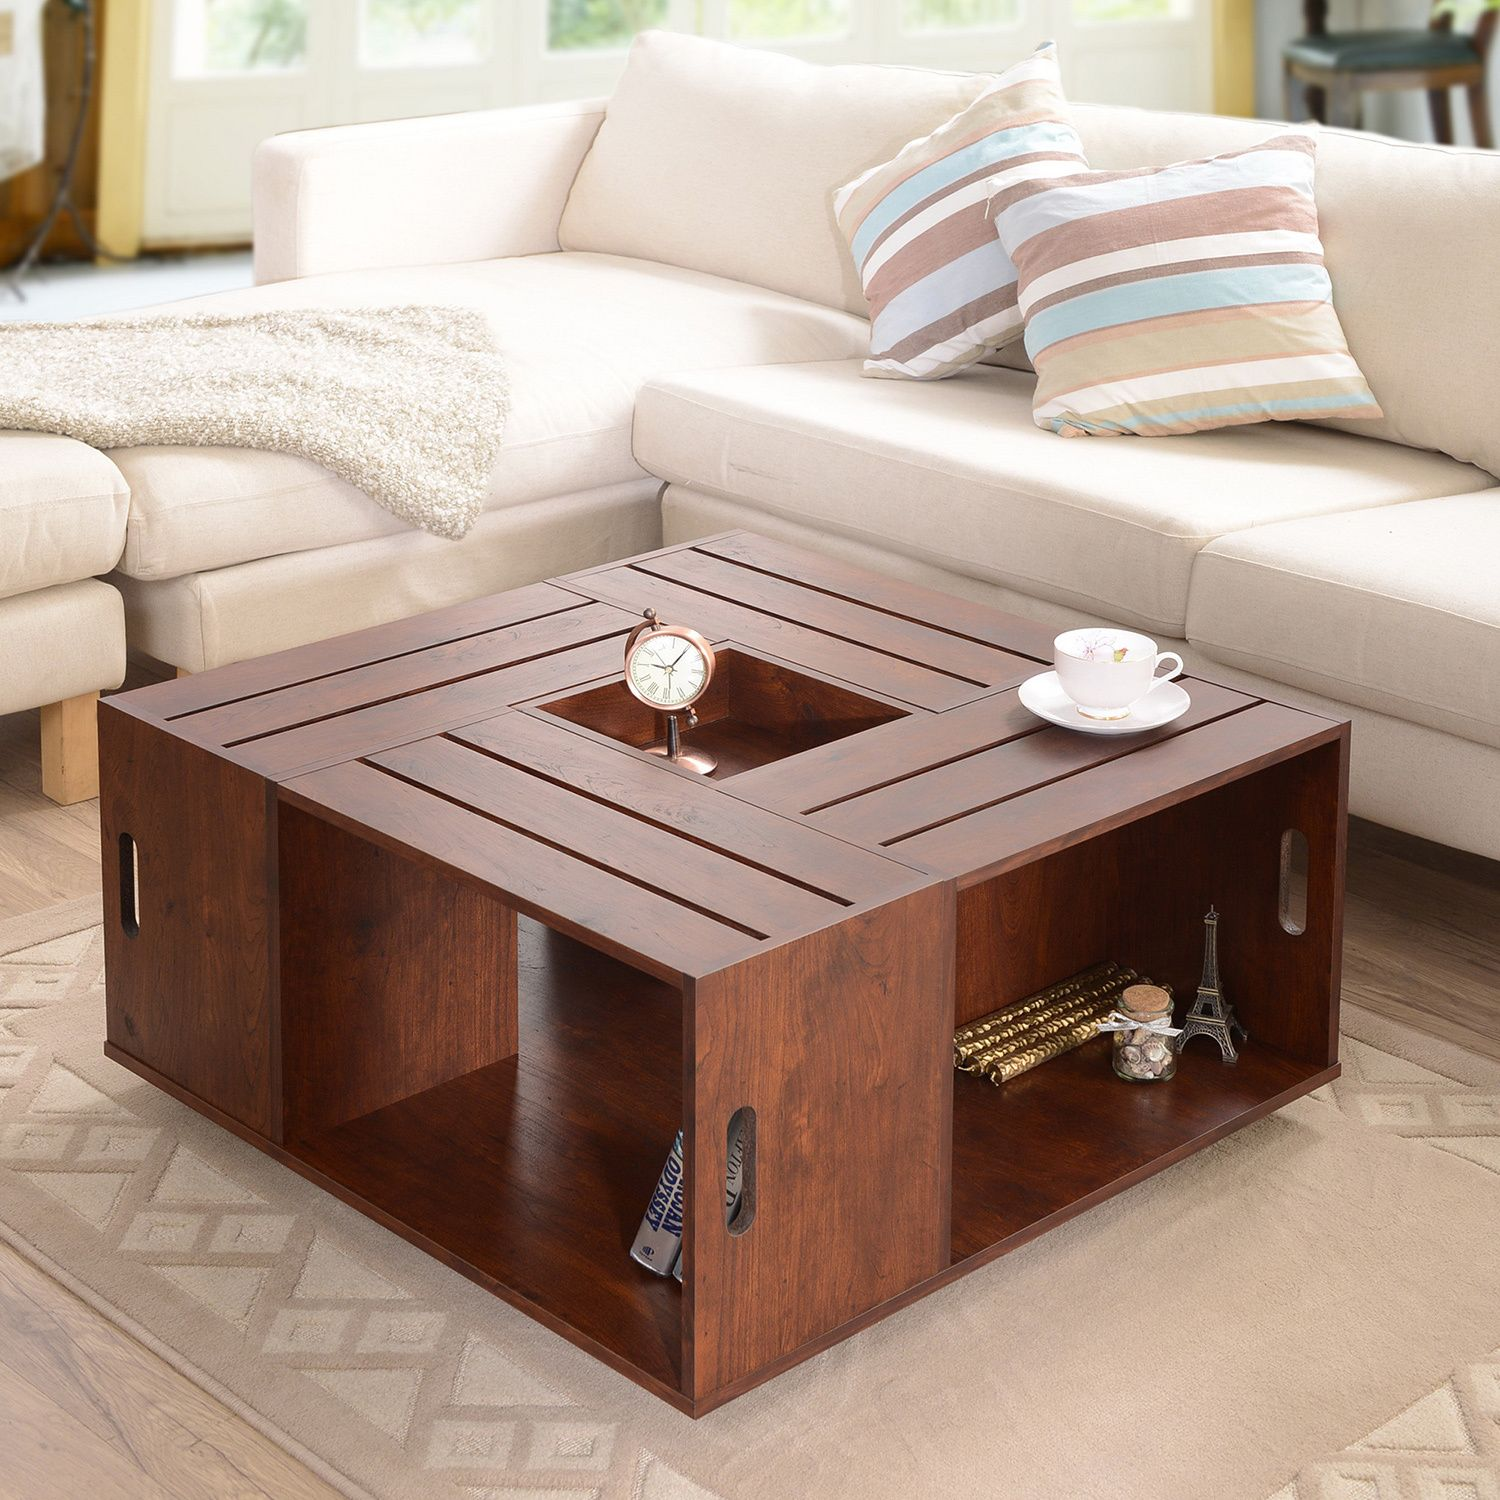 Furniture Of America The Crate Square Coffee Table With Open